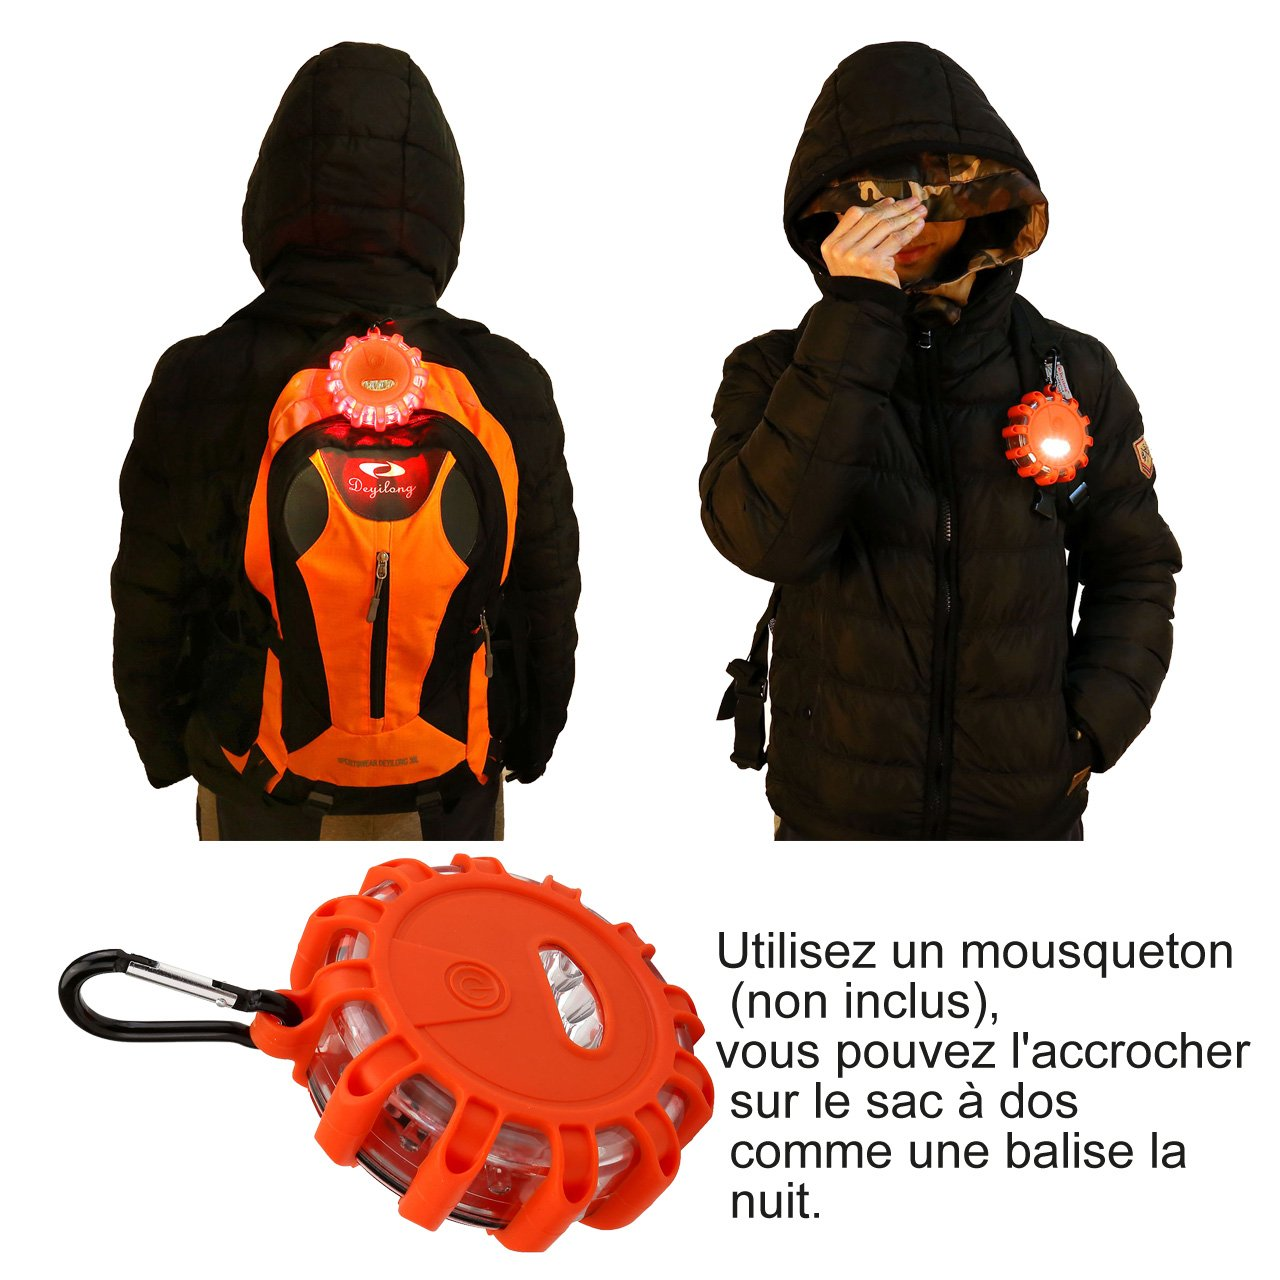 Lot de 3 avec Sac de Rangement Imperm/éable IP65 ACBungji Gyrophare Orange LED Voiture Auto Route Clignotant Avertisseur Lumineux Signal Urgence Lumi/ère Avertissement Base Magn/étique